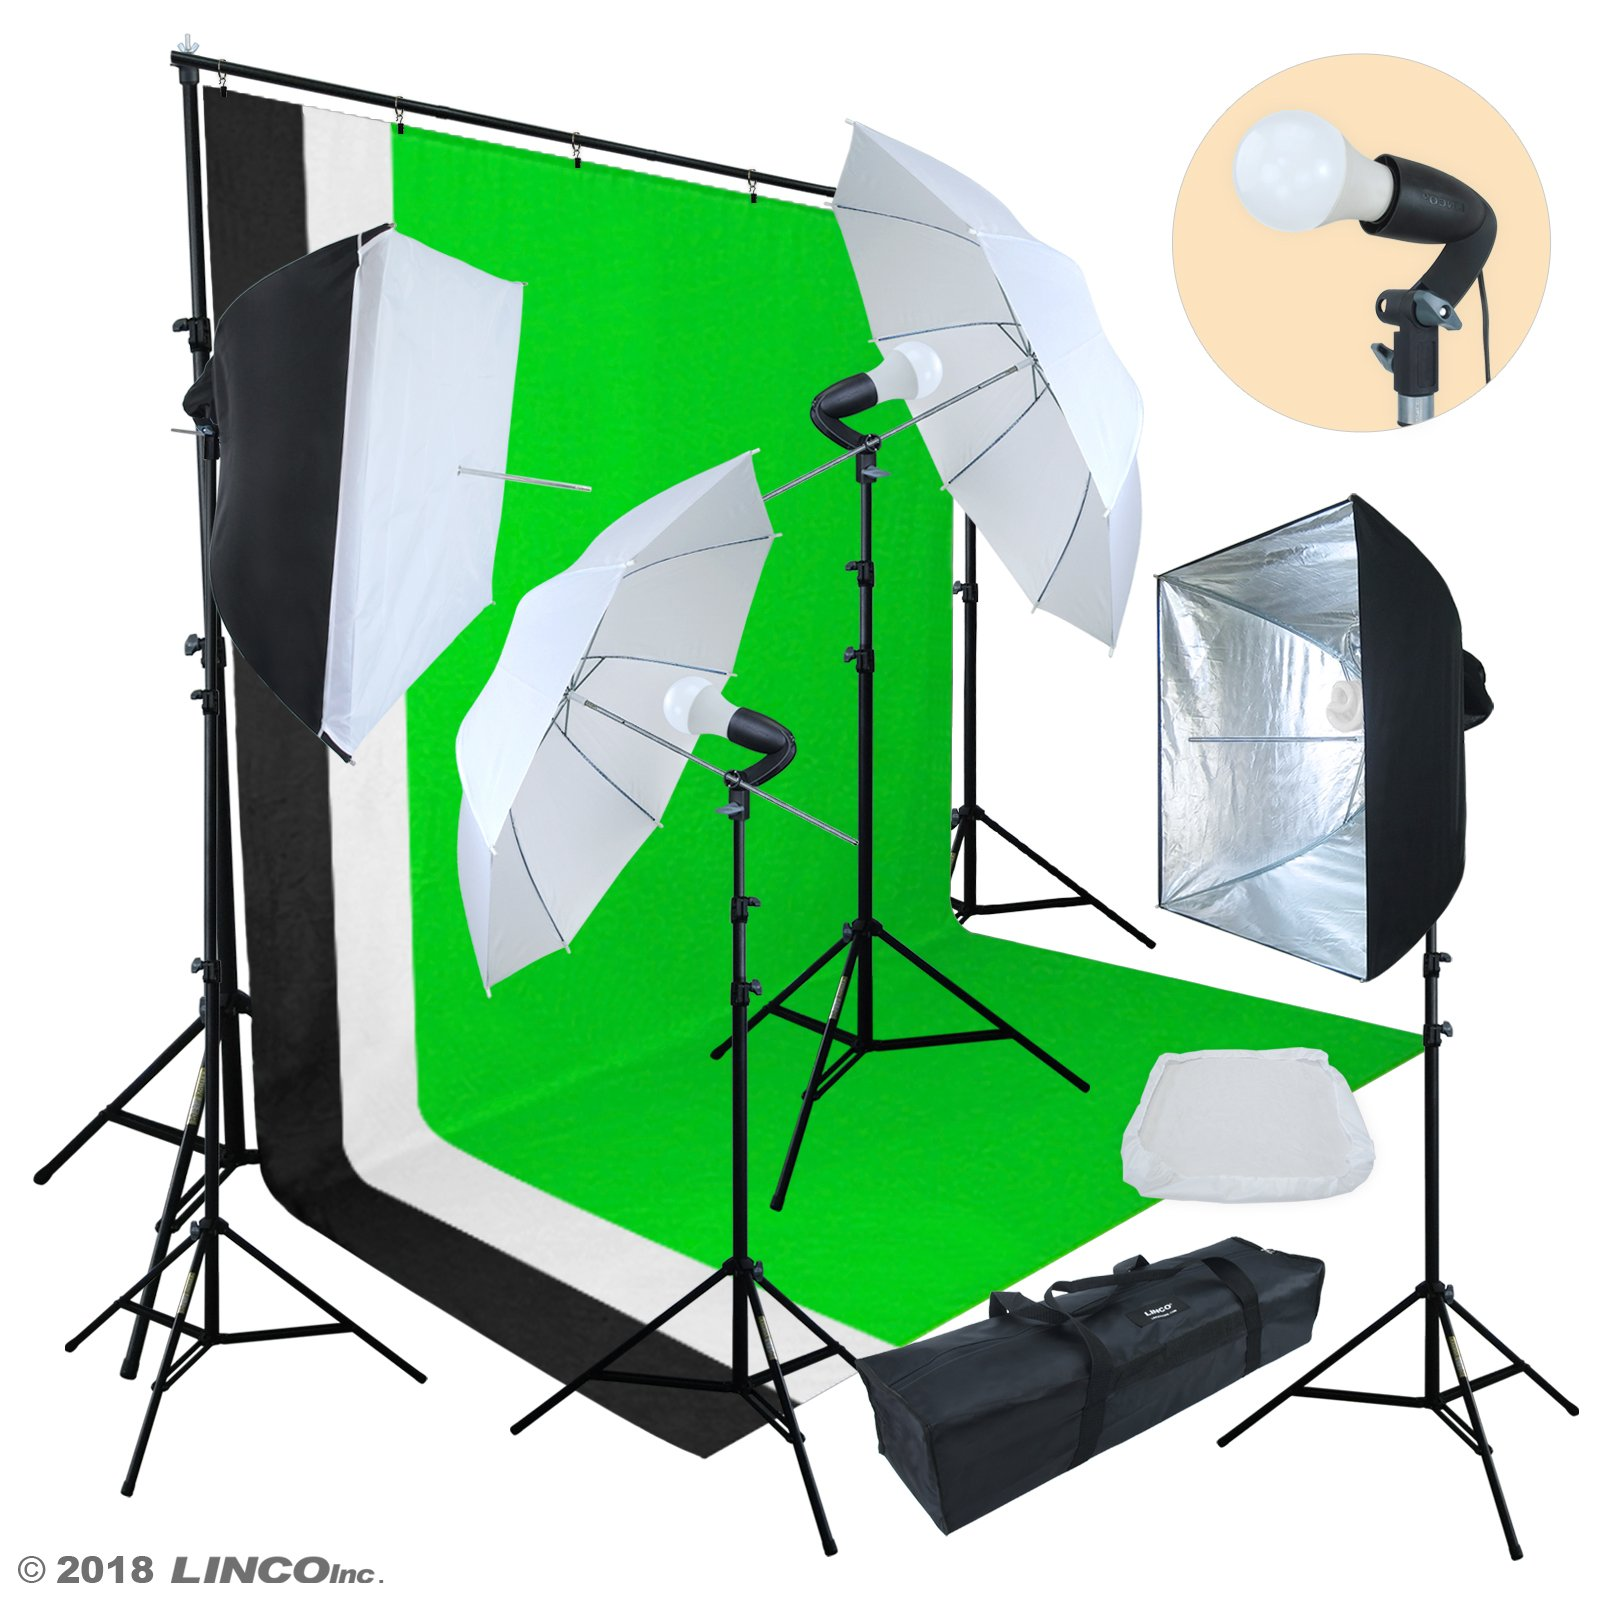 Linco Lincostore Photo Video Studio Light Kit AM174 - Including 3 Color 5x10ft Backdrops (Black/White/Green) Background Screen by Linco